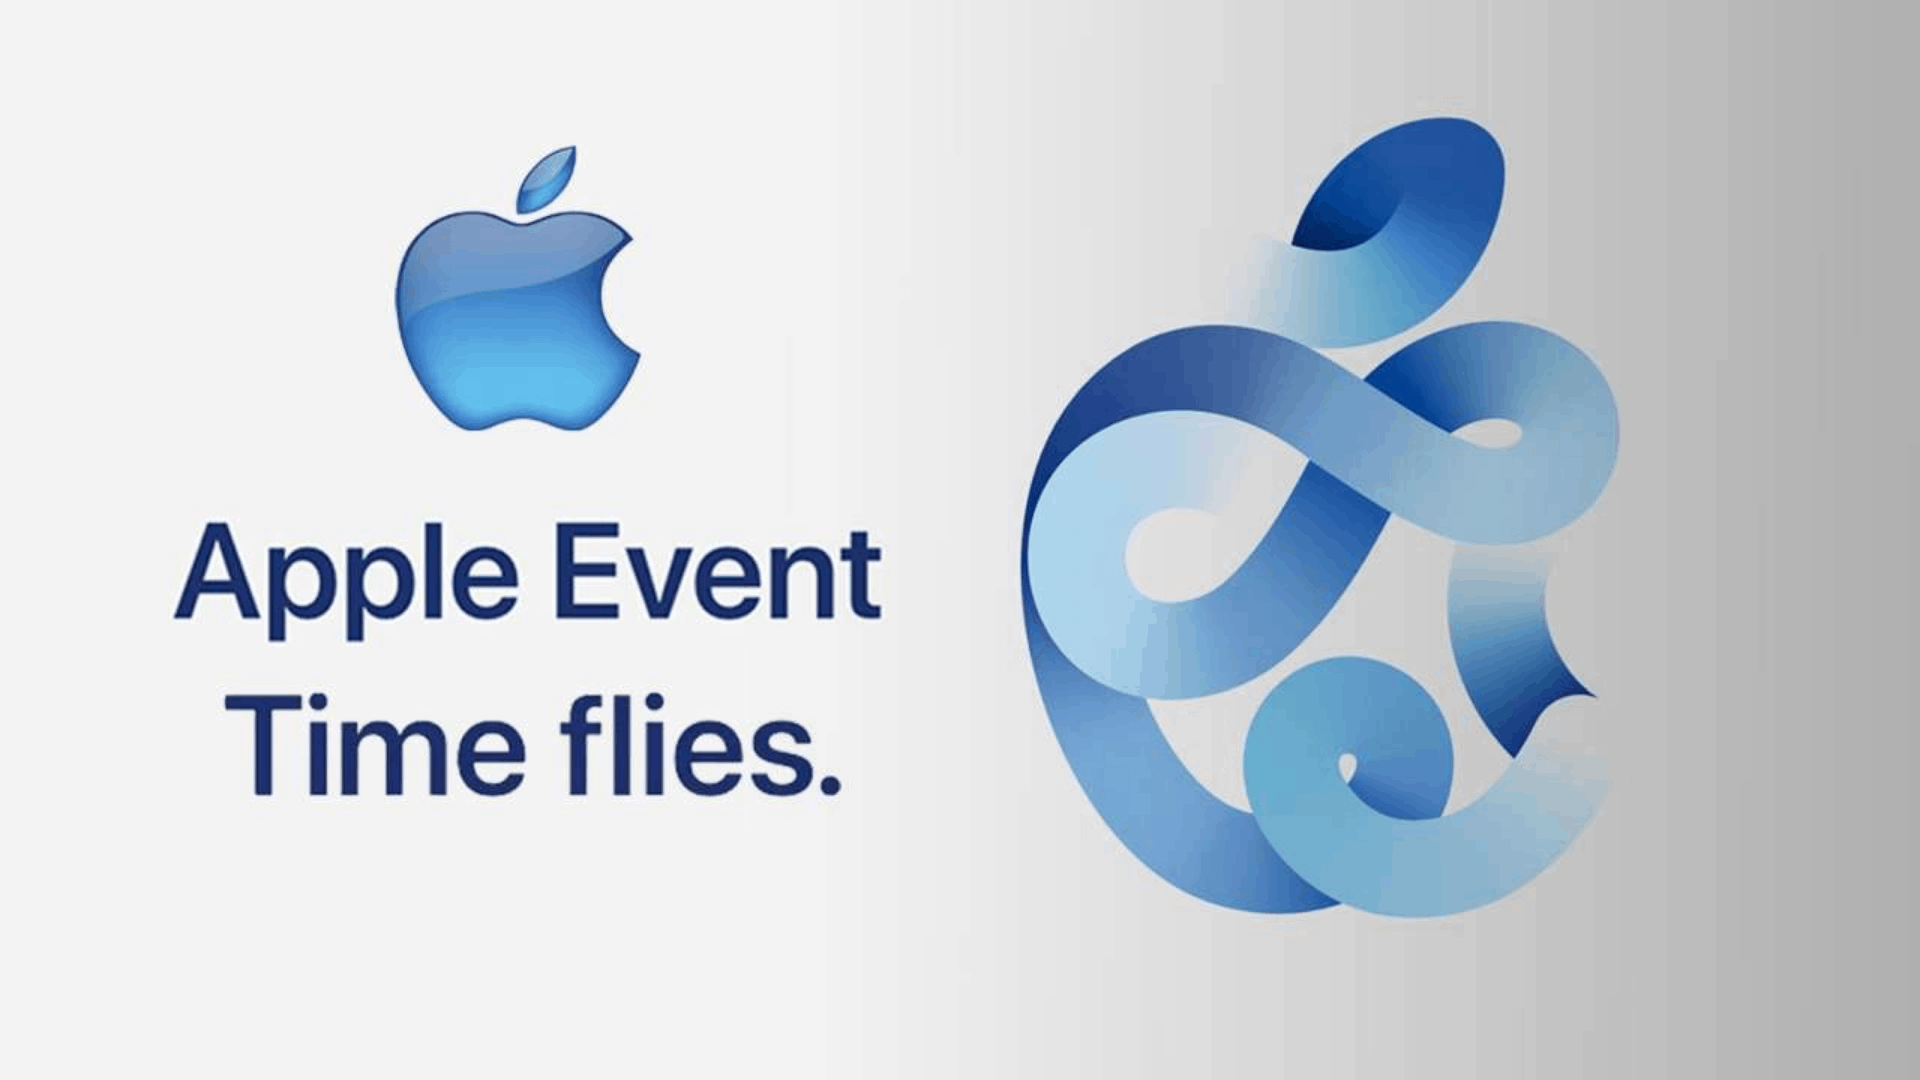 Apple Time Flies event